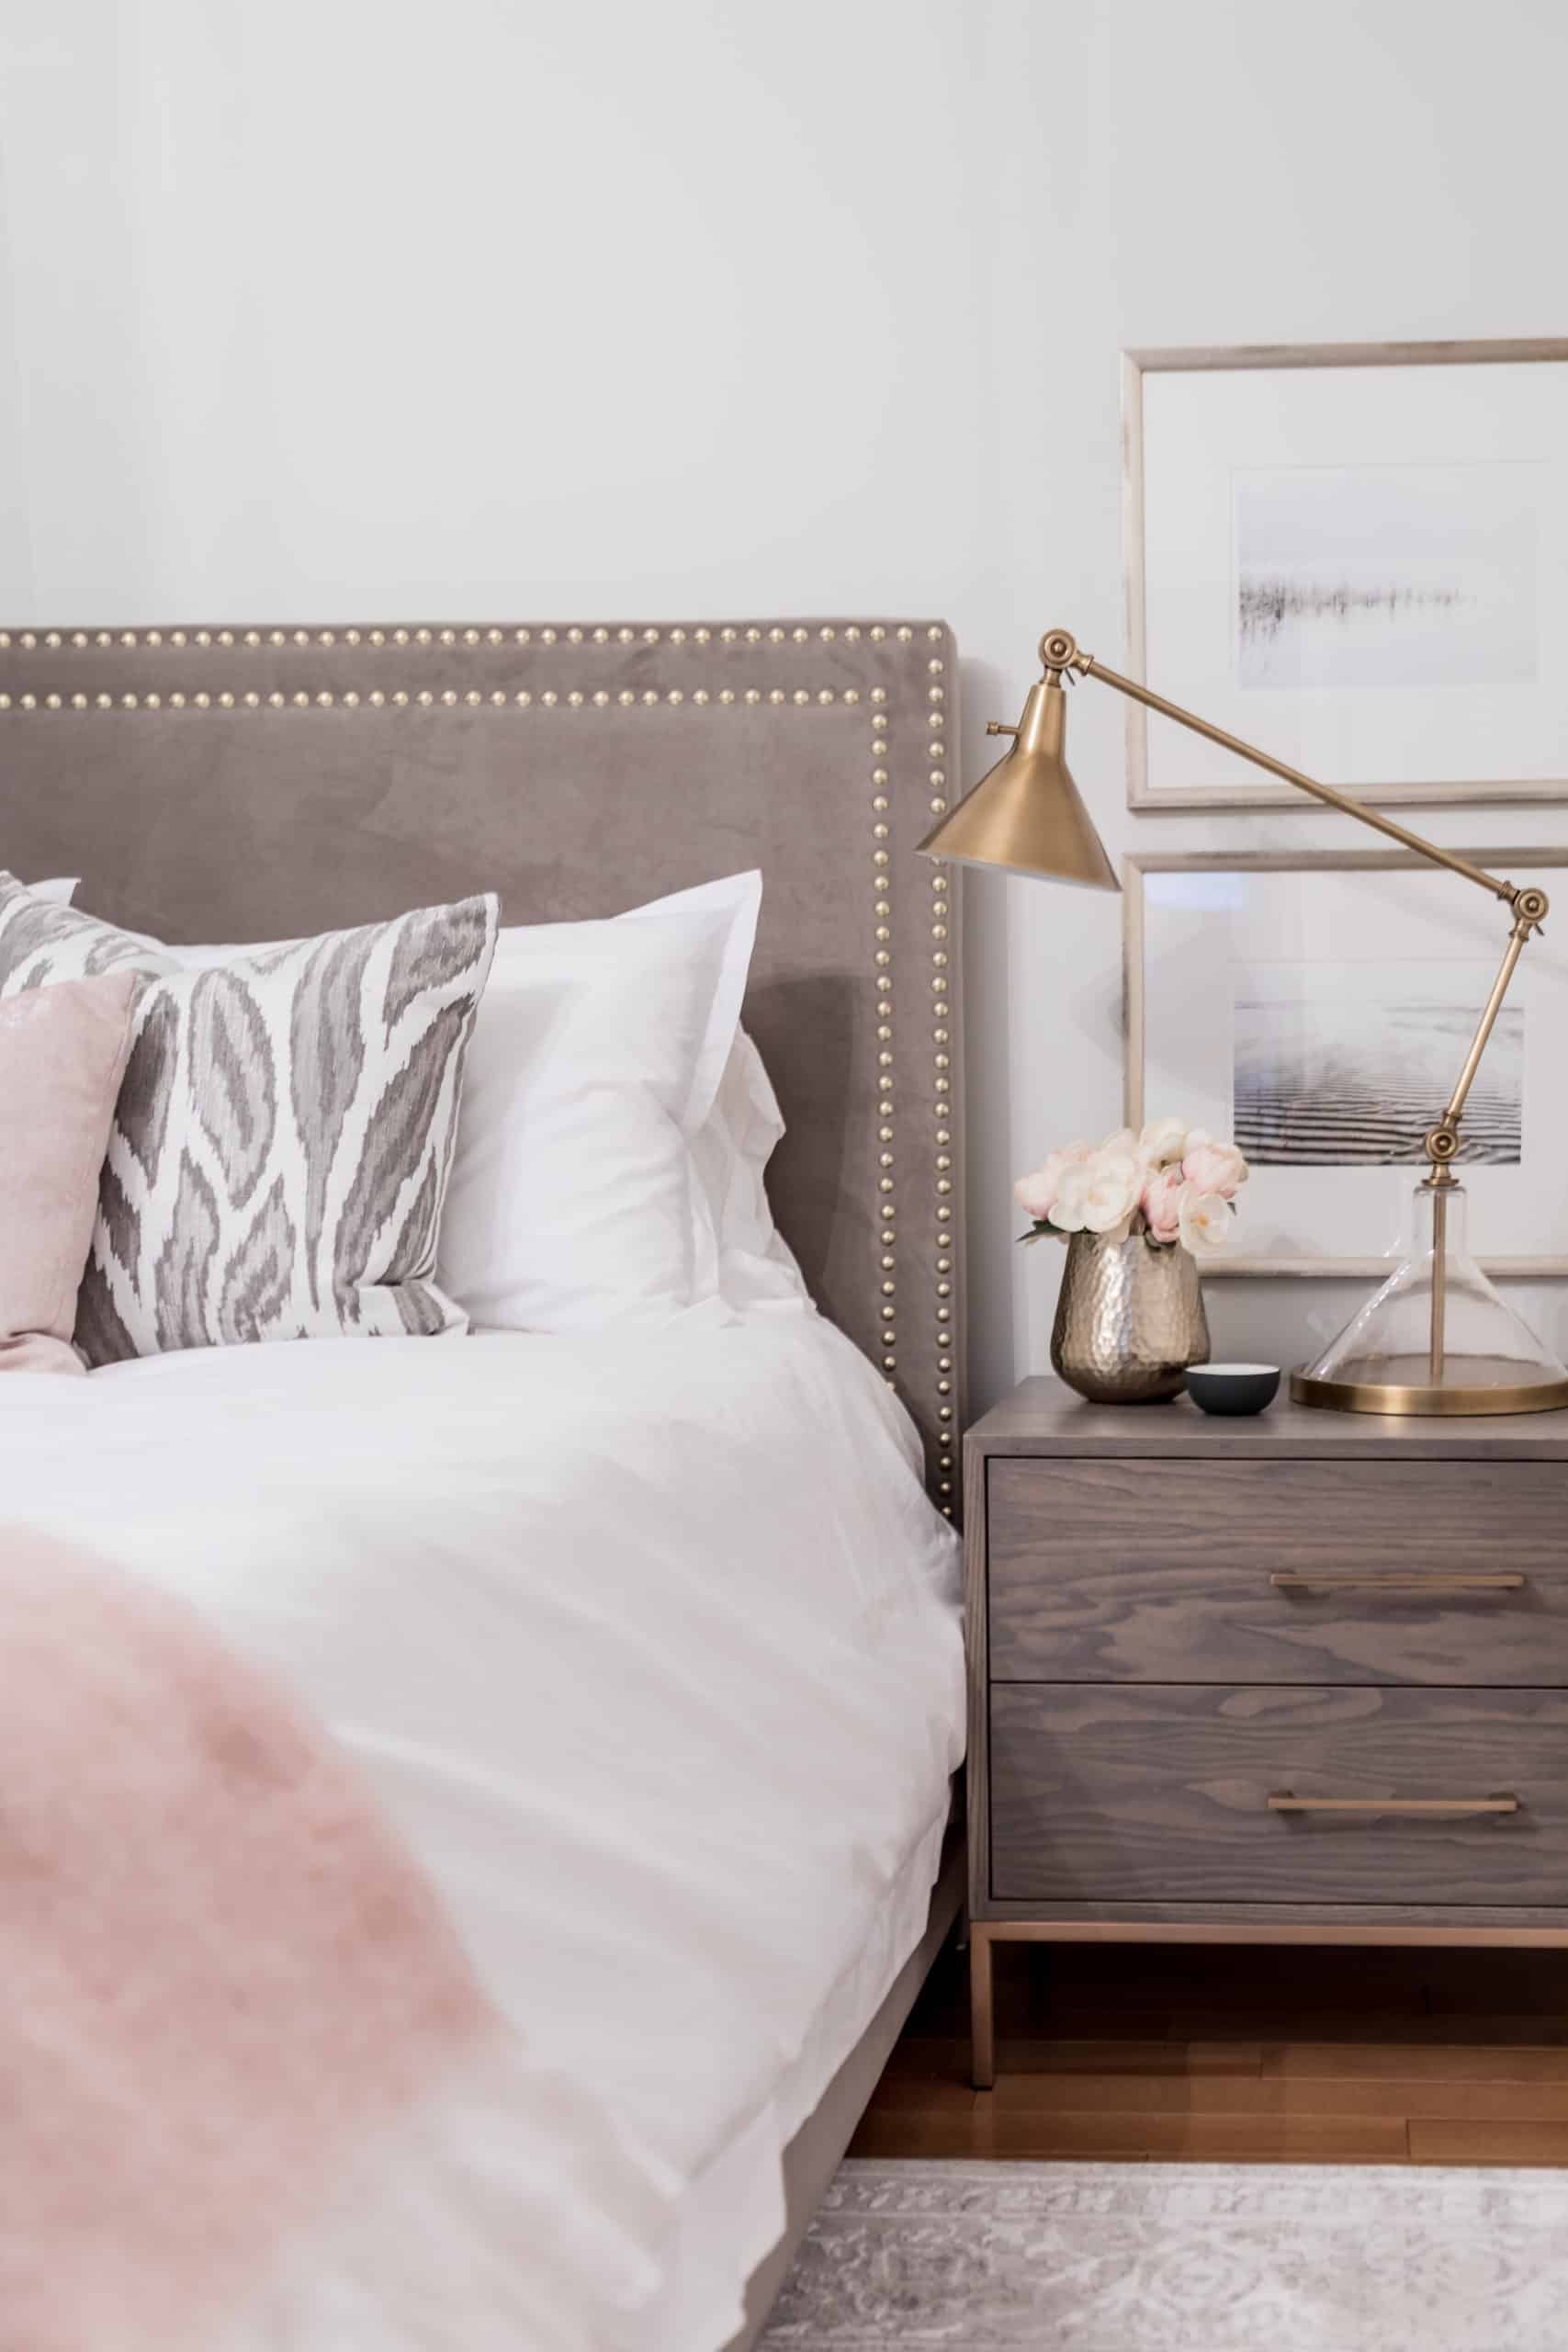 Wooden bedside table with a tall work lamp on it